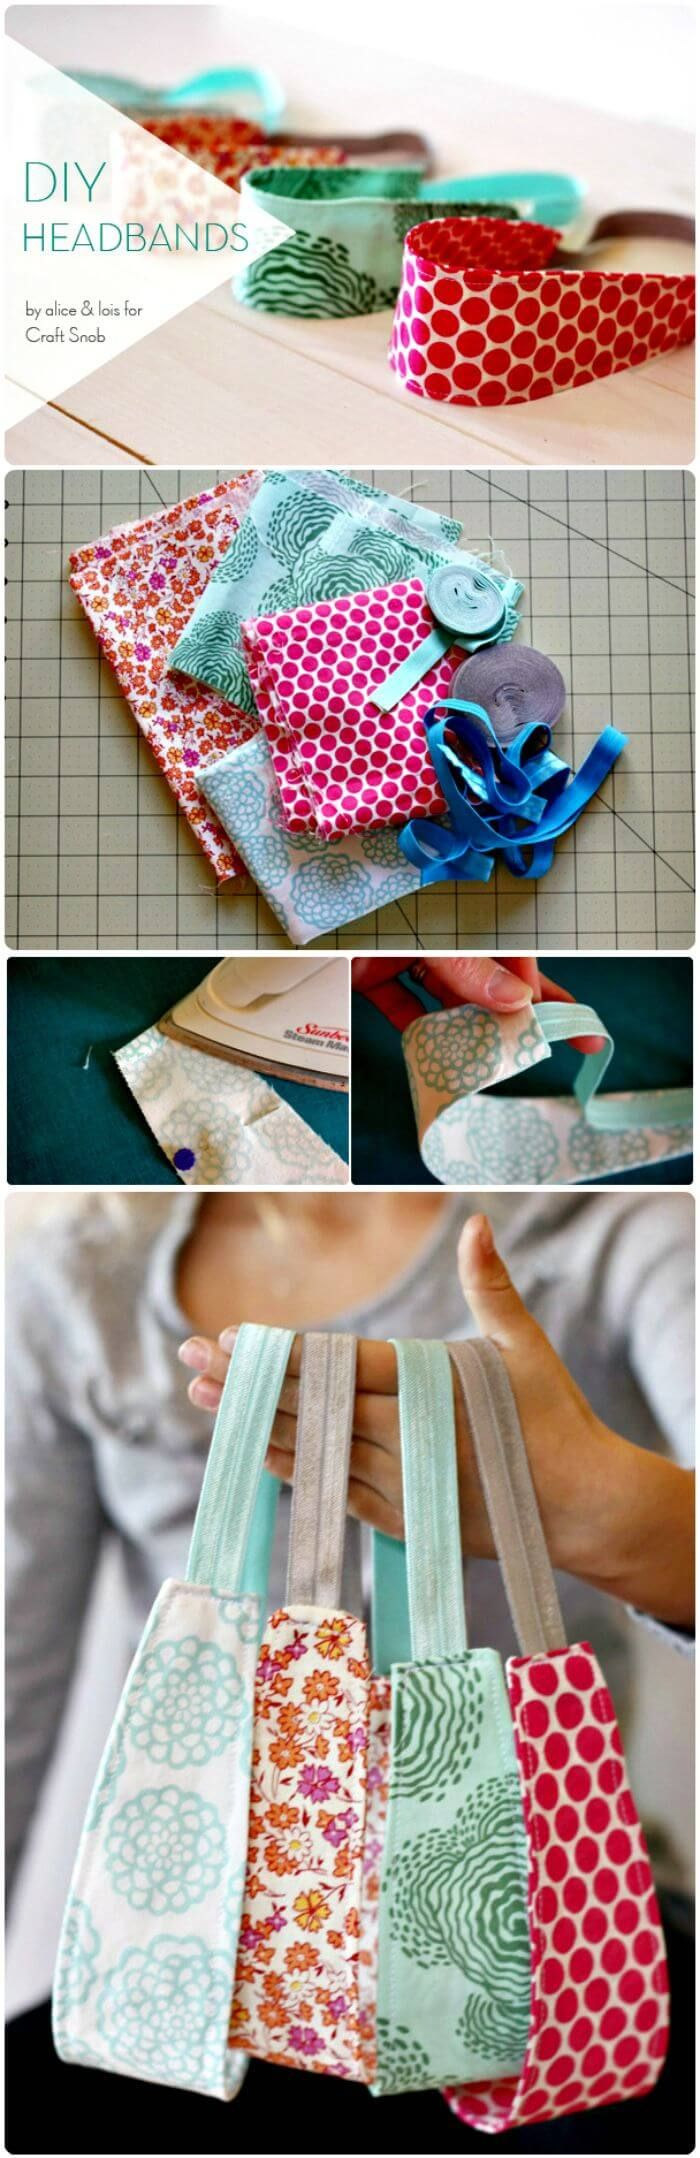 17++ Easy diy crafts to sell ideas in 2021